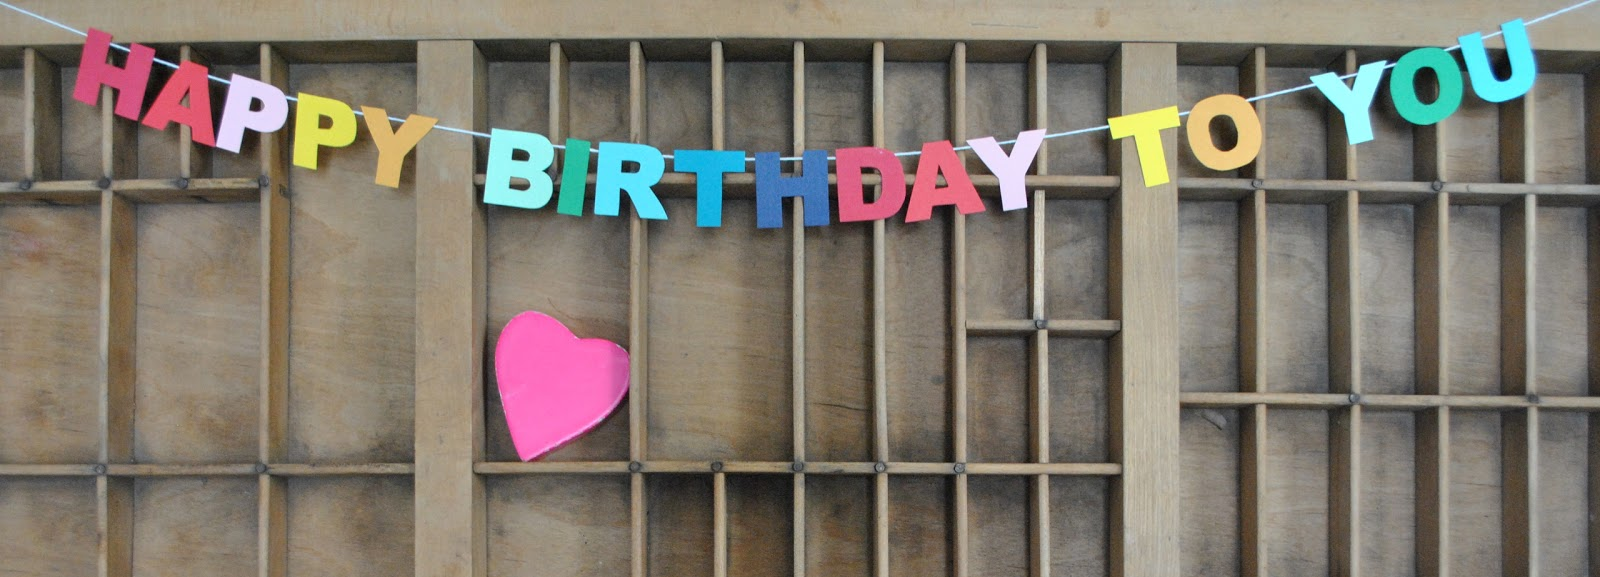 clever ways to say happy birthday ; DSC_0092